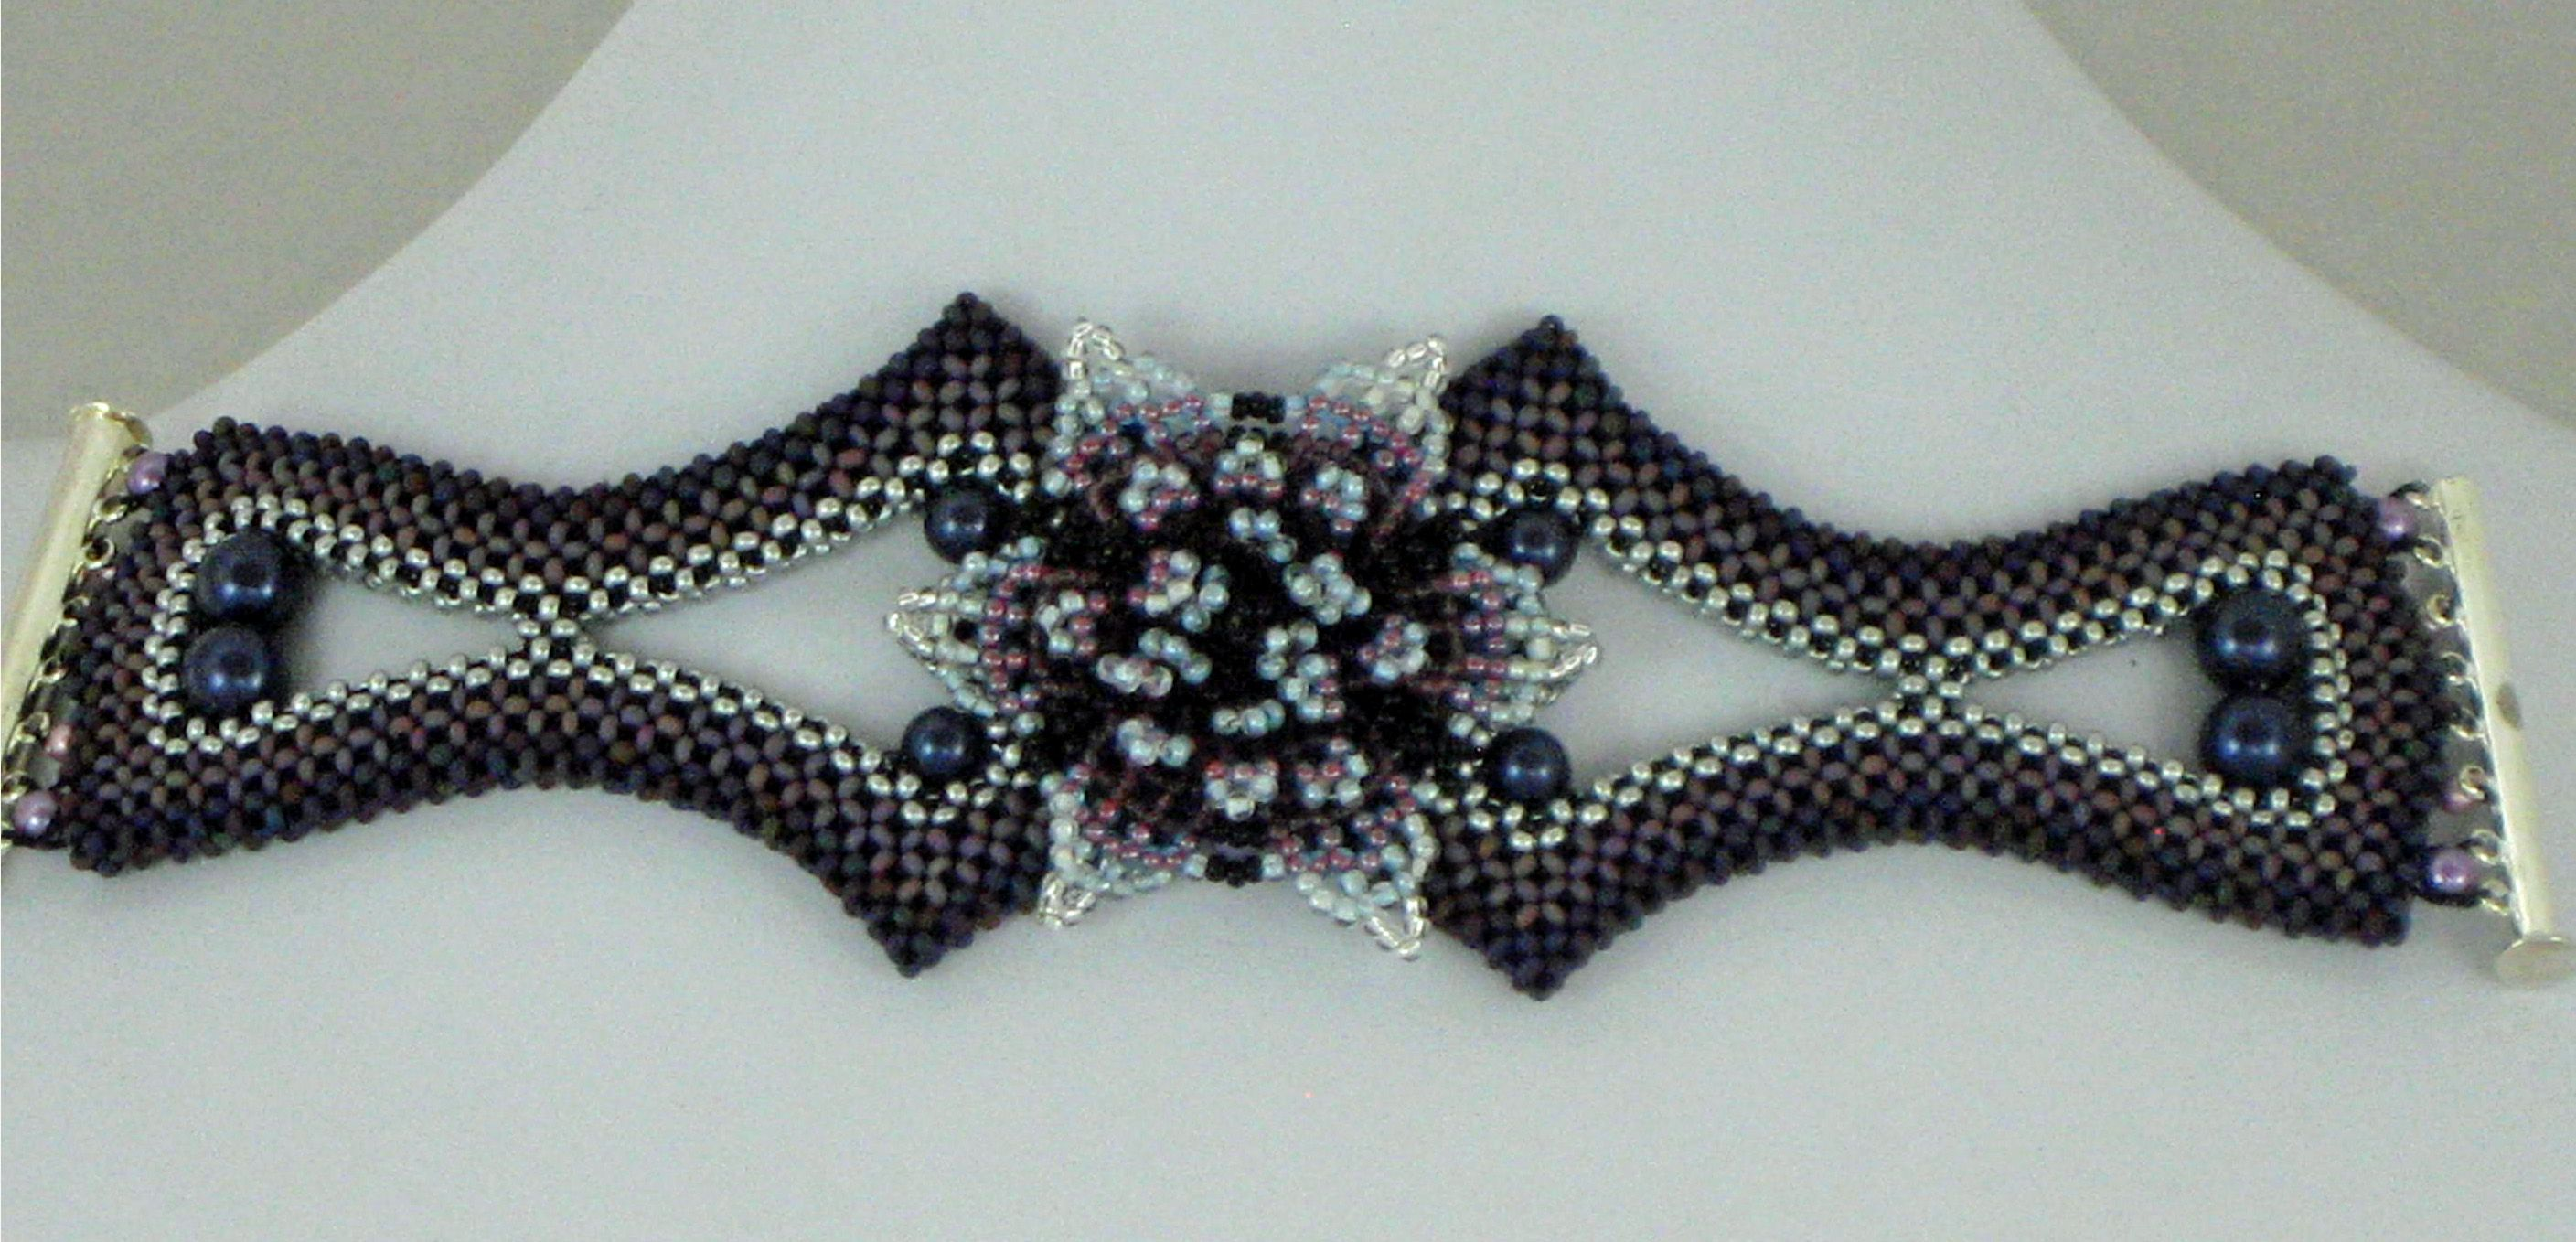 Beaded bracelet by Bonnie Van Hall. GlassWear Art Couture.